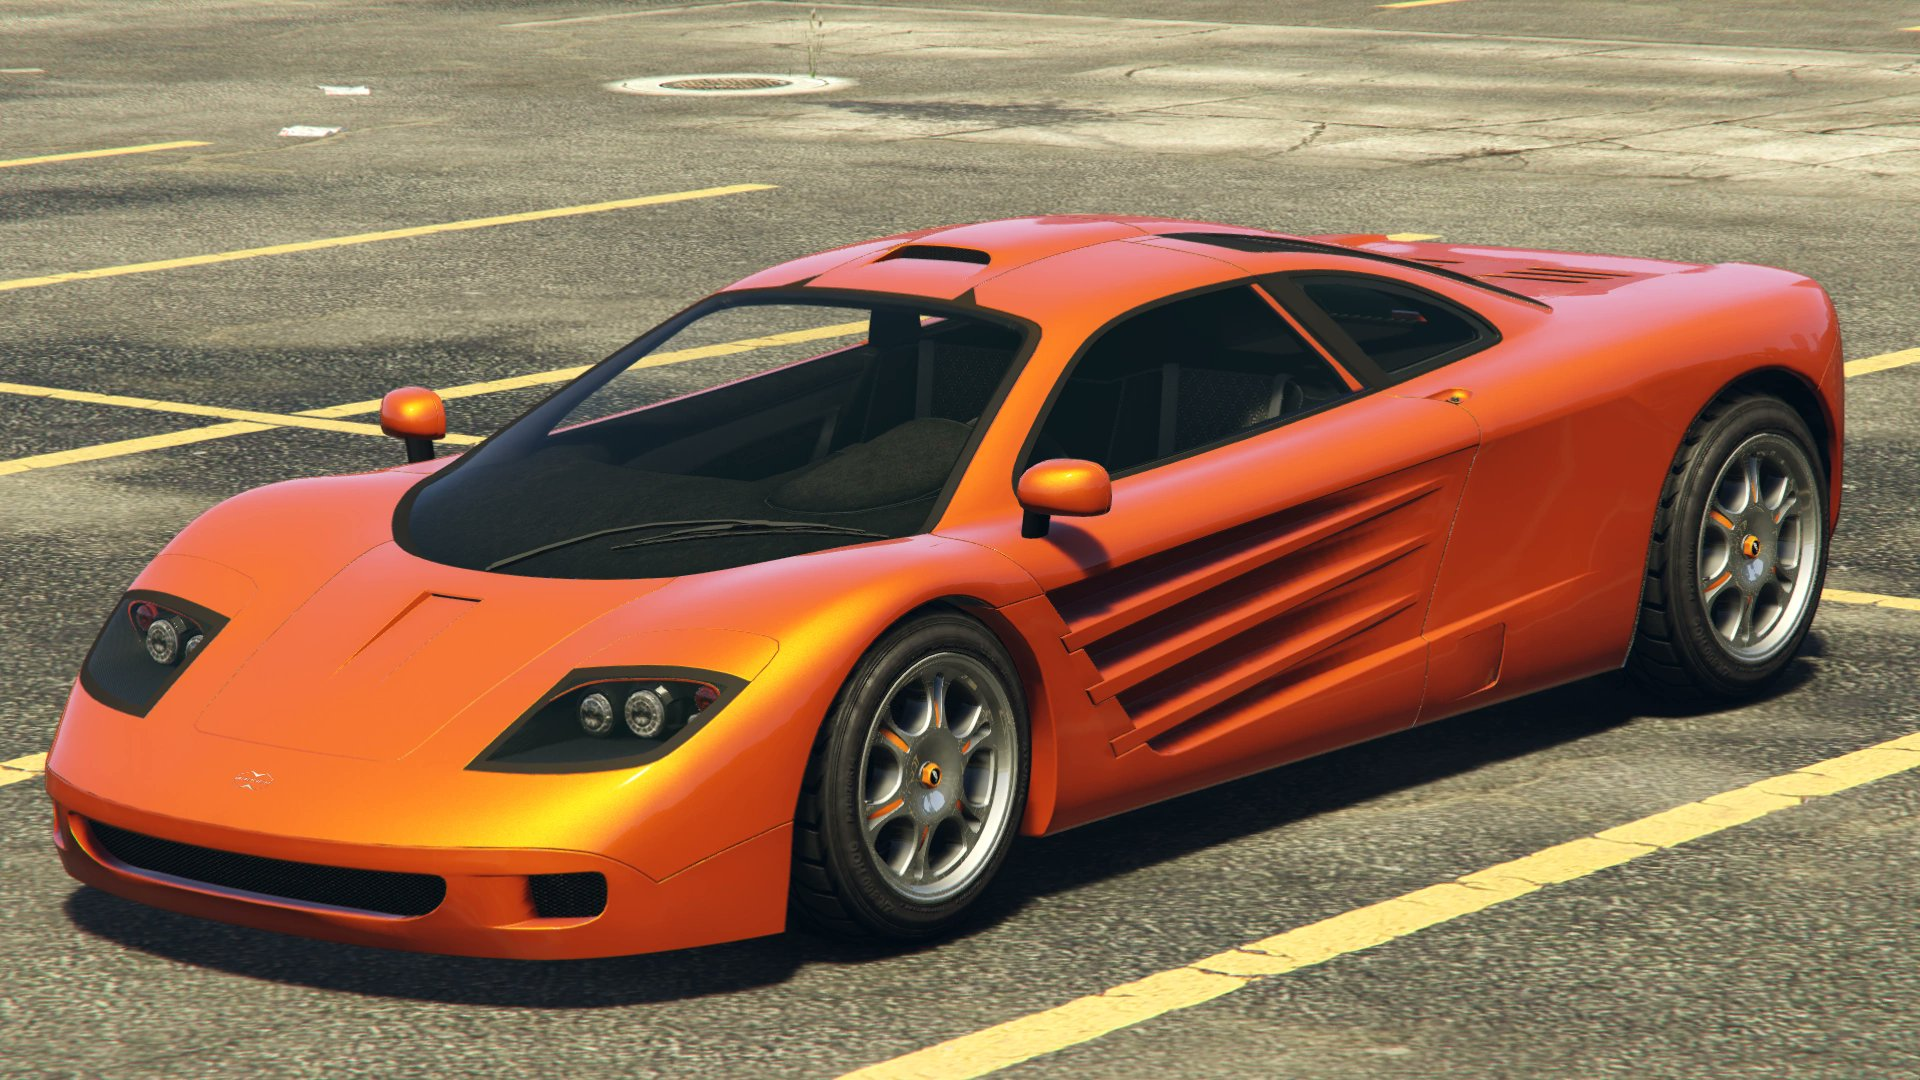 progen-gp1-voiture-podium-casino-gta-5-online